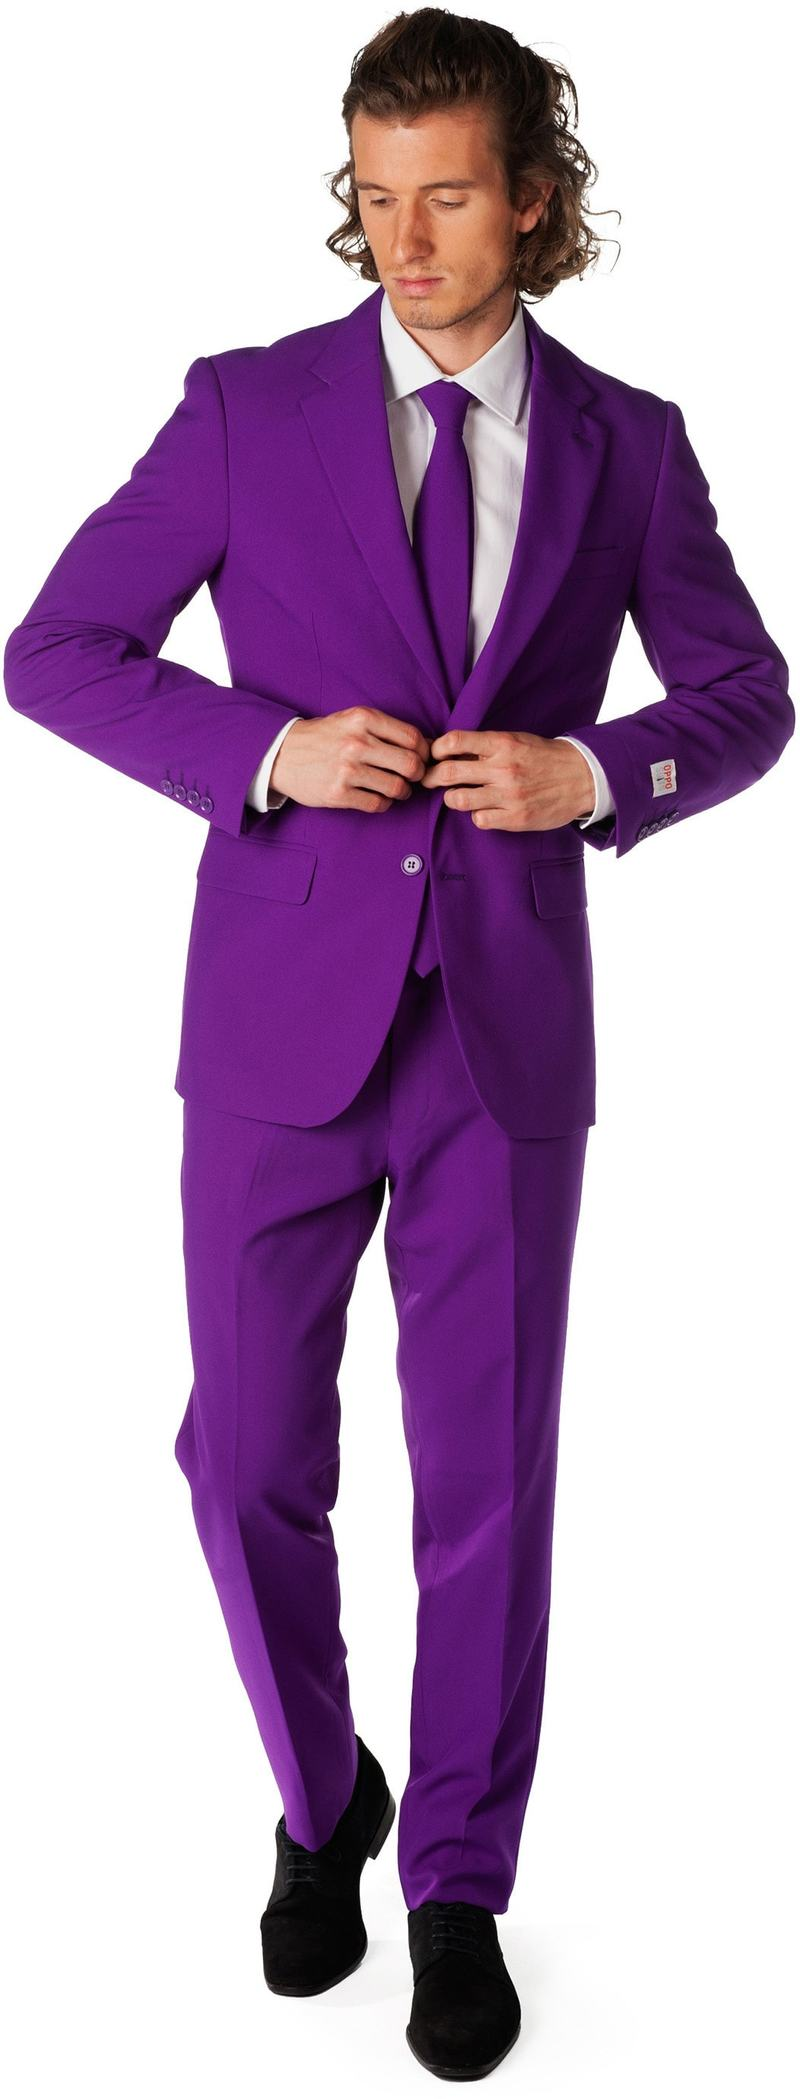 OppoSuits Purple Prince Suit photo 0